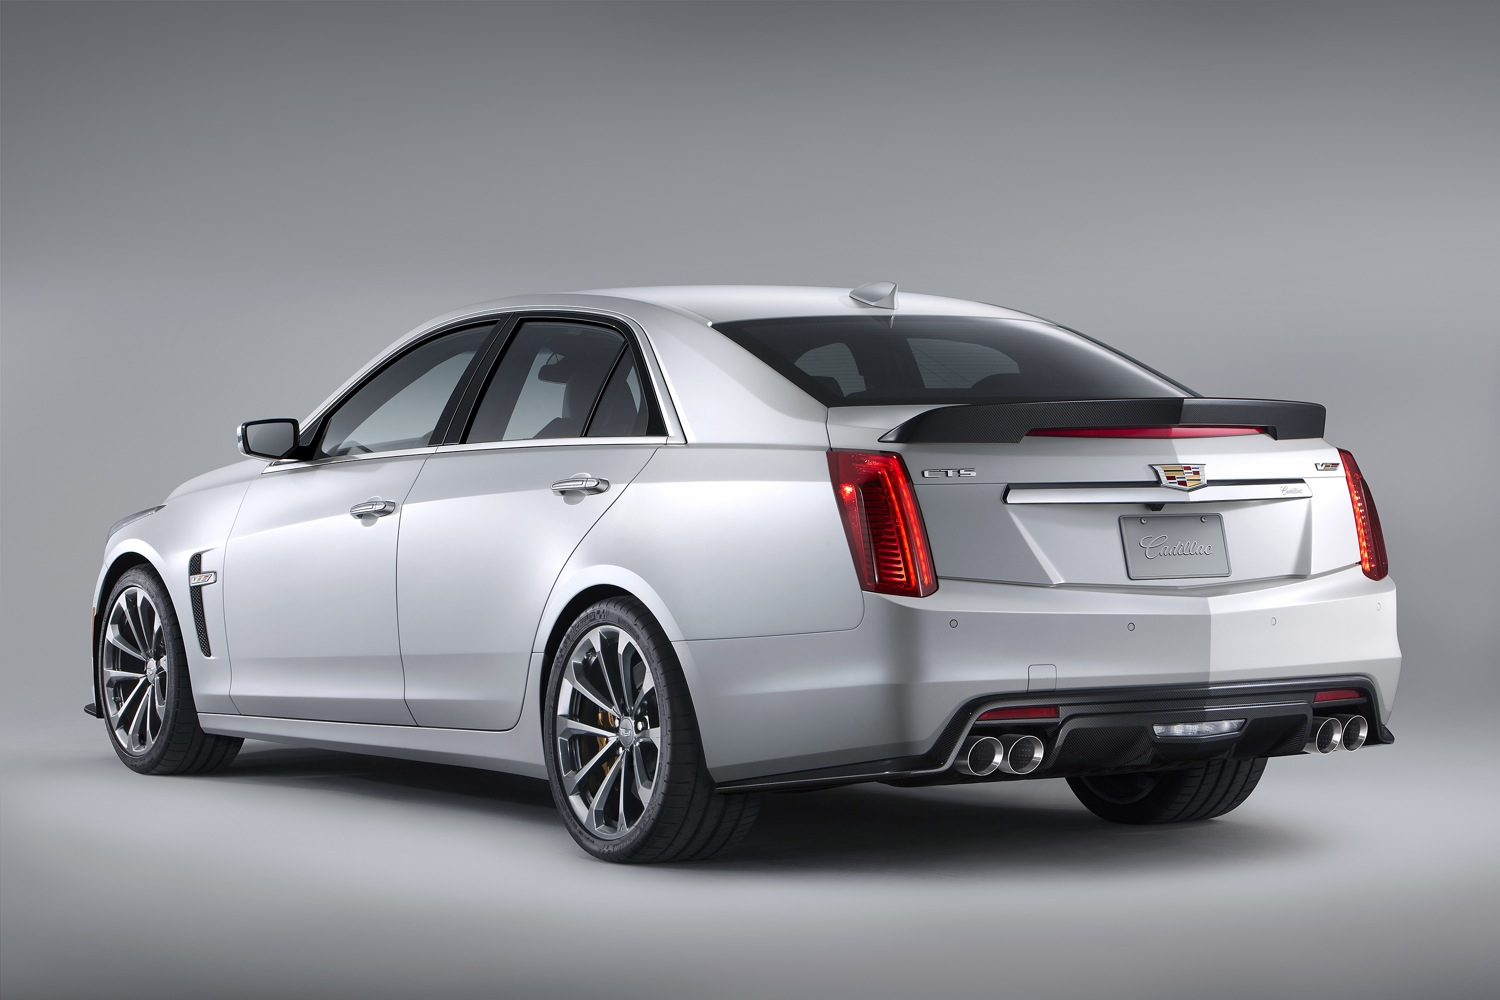 640 Hp Cadillac >> 2016 Cadillac CTS-V is the Most Powerful Cadillac Ever